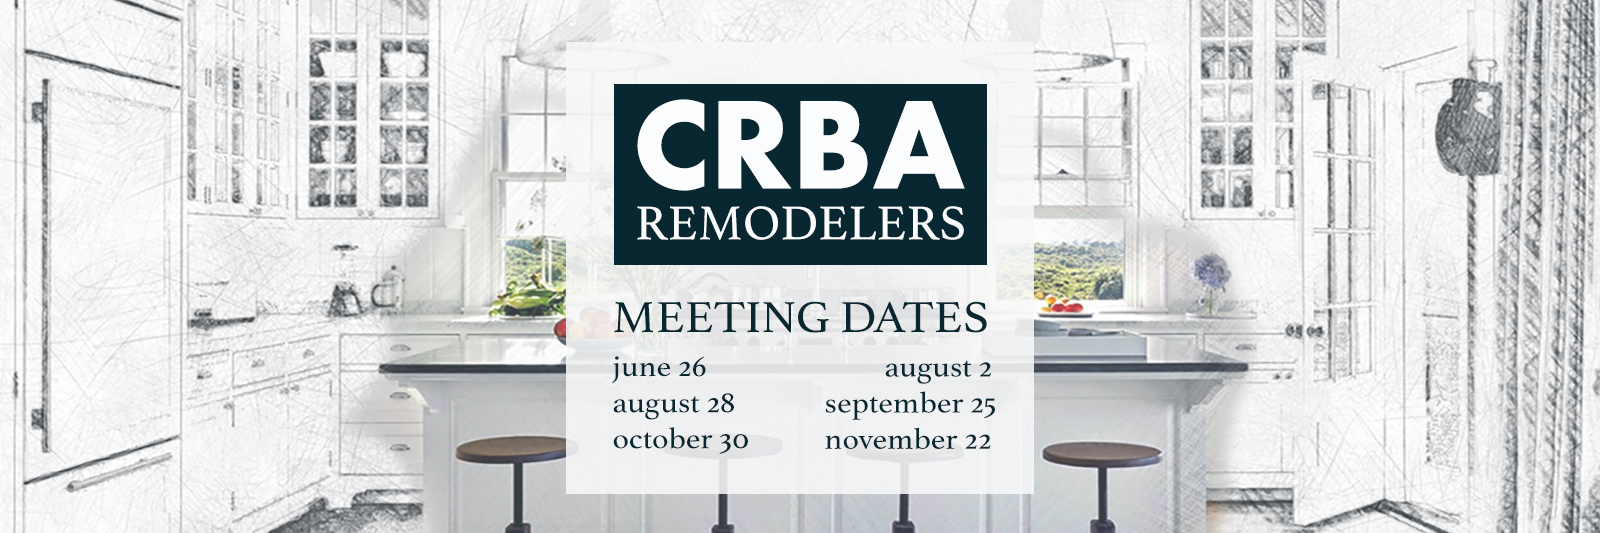 Remodelers Council Meetings